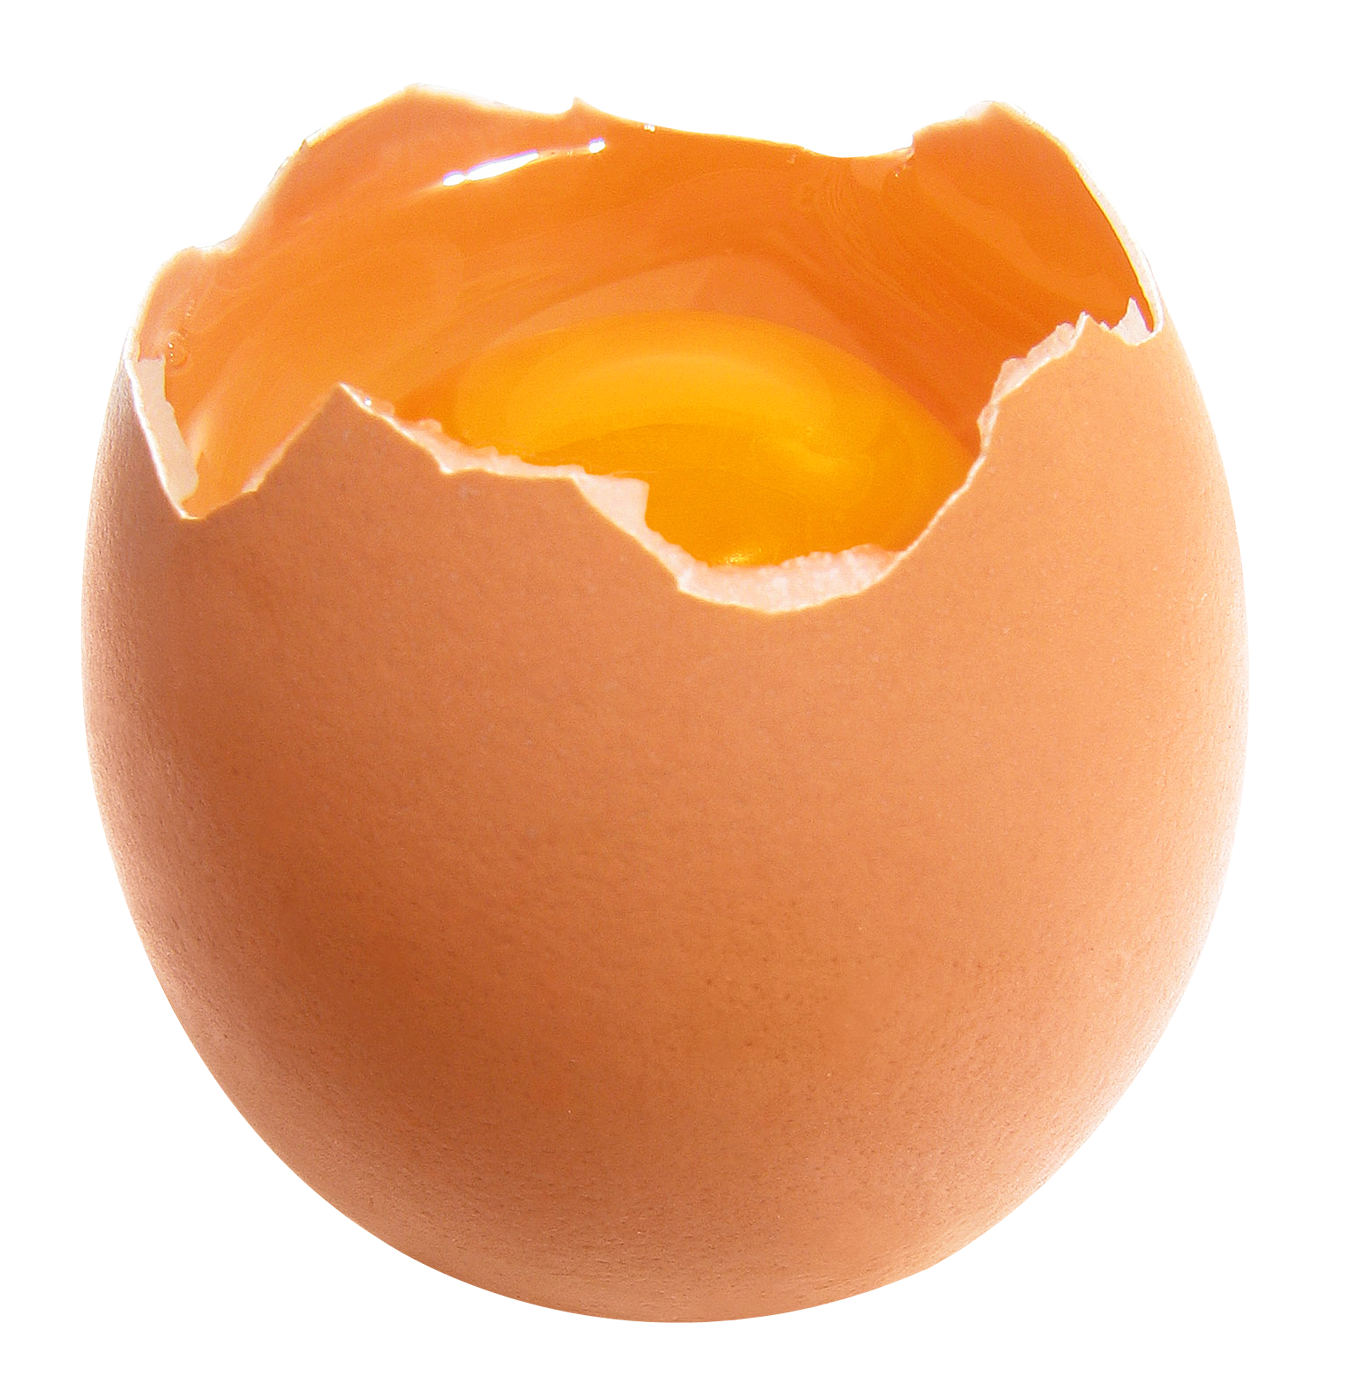 Broken eggs. PNG